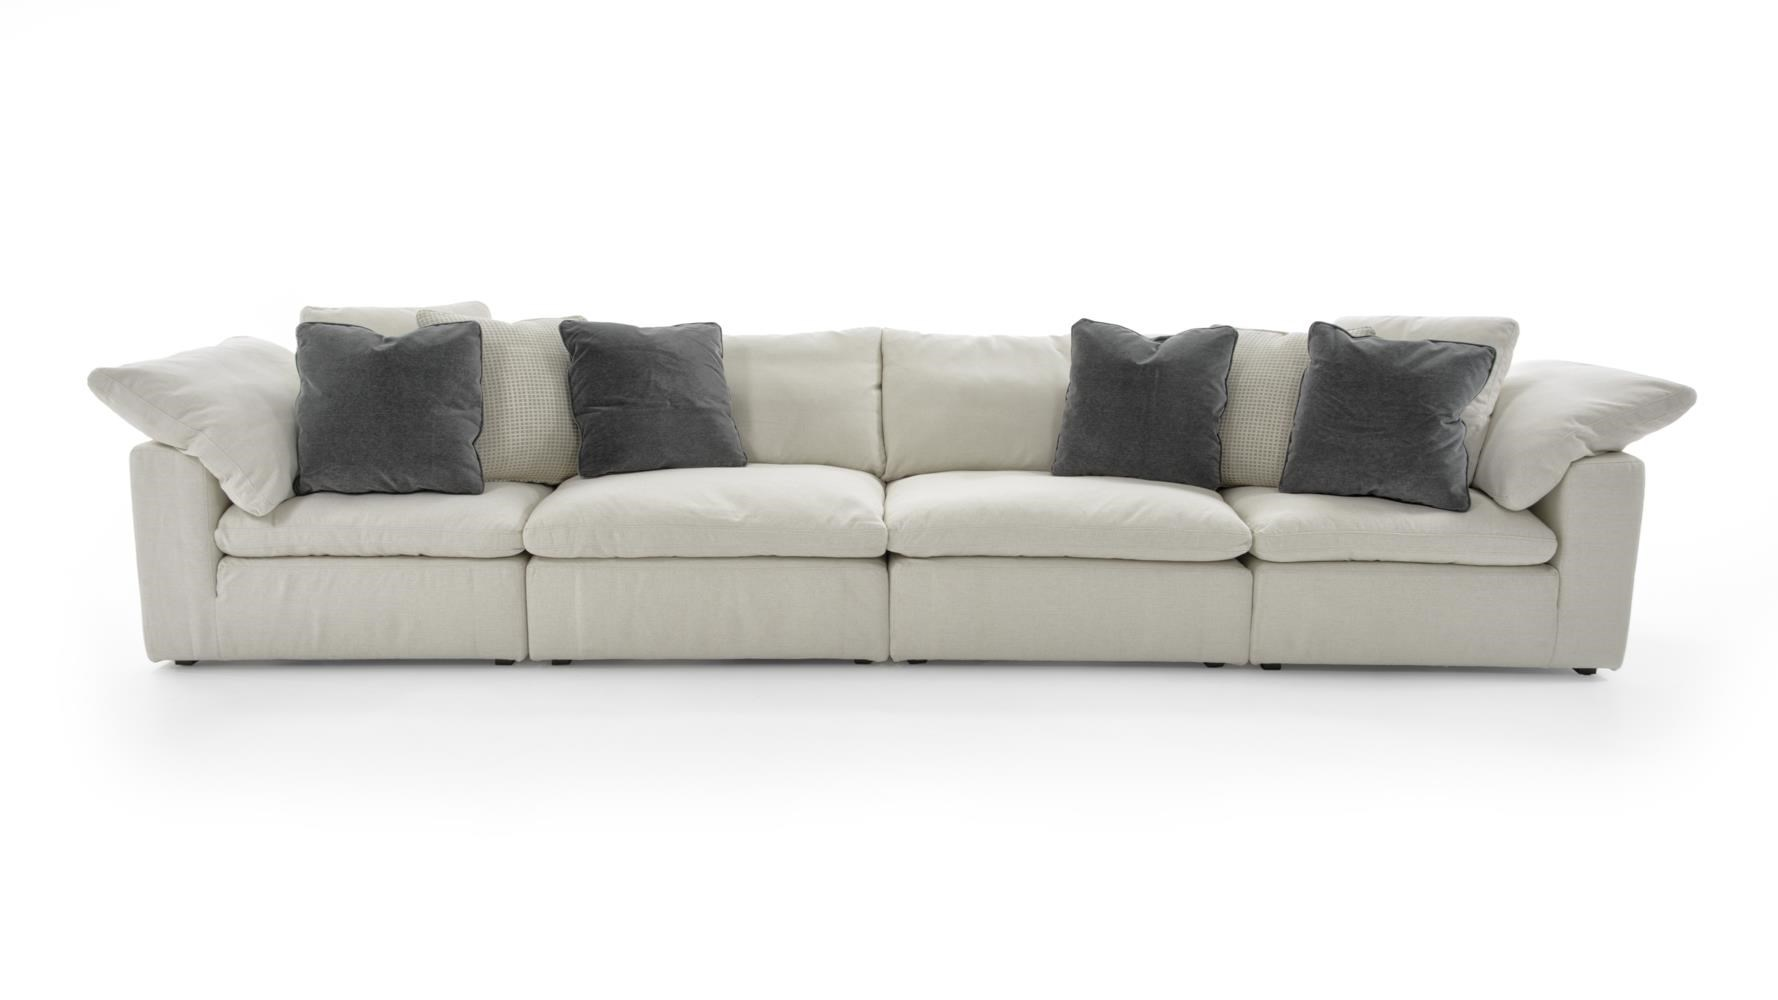 Palmer 4 Pc Sectional Sofa by Universal at Baer's Furniture